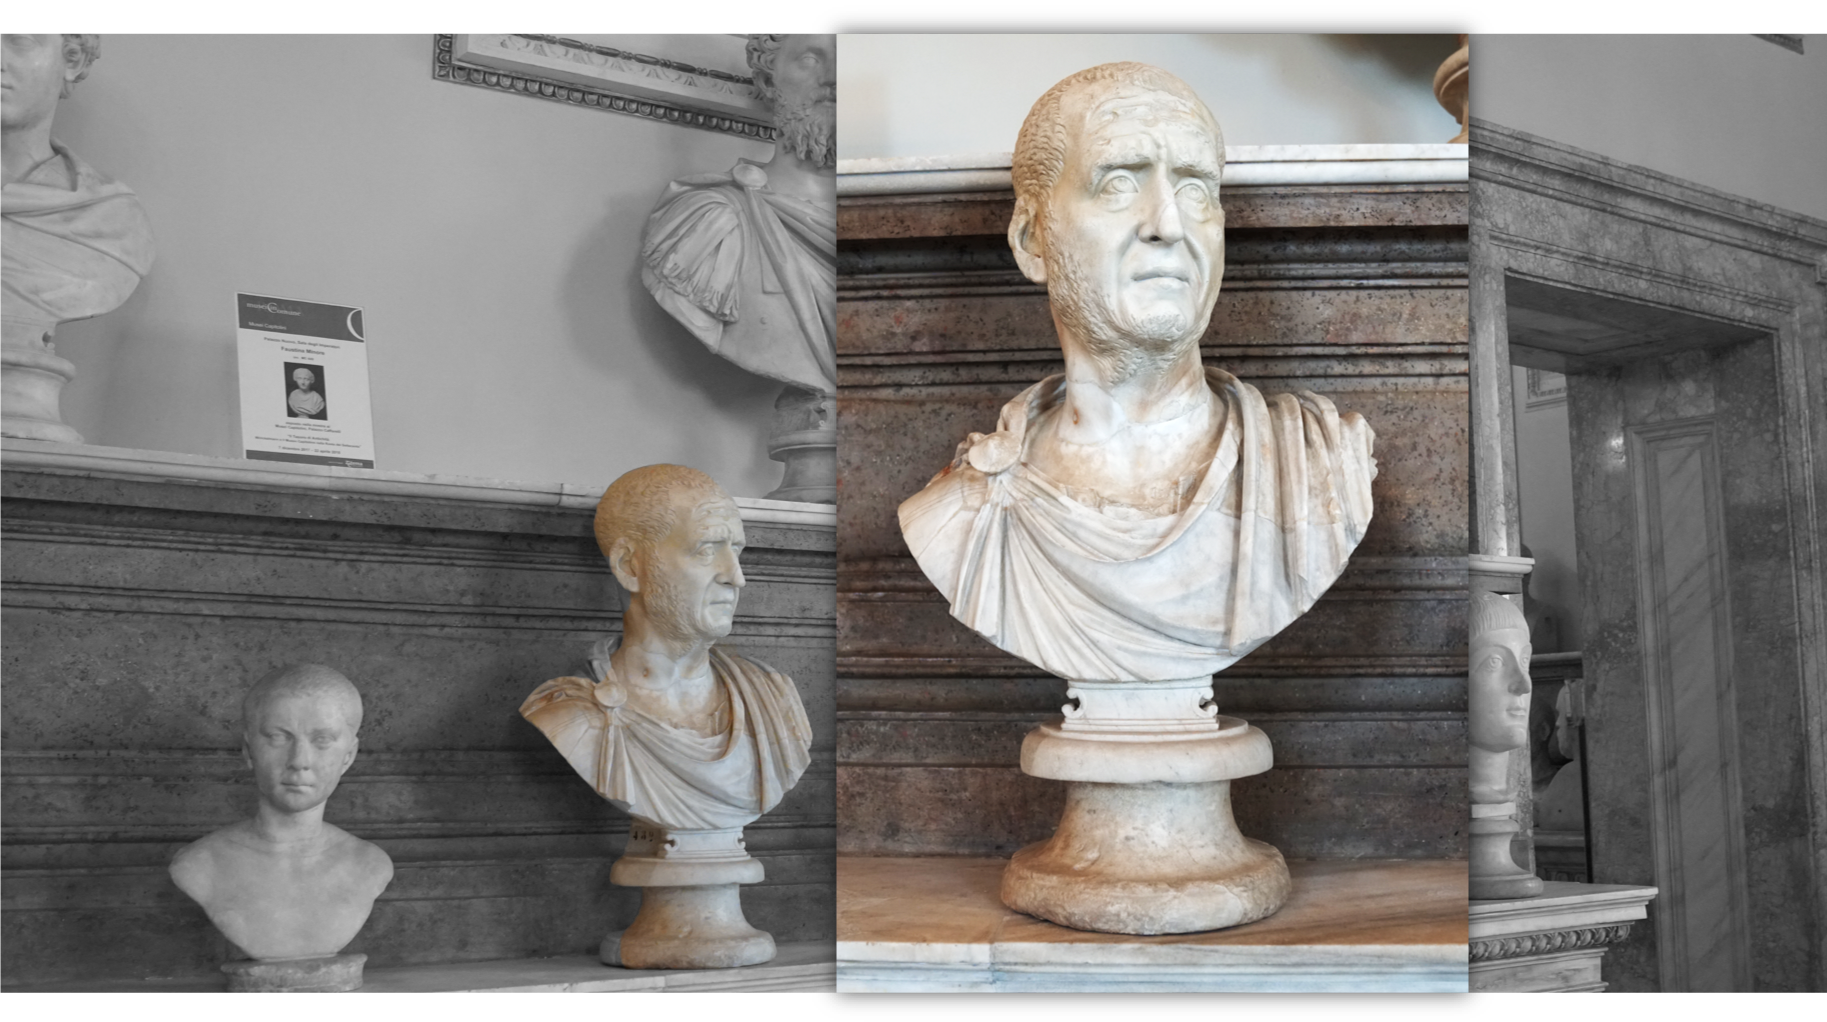 DeciusCapitolineMuseumCoverImage.png